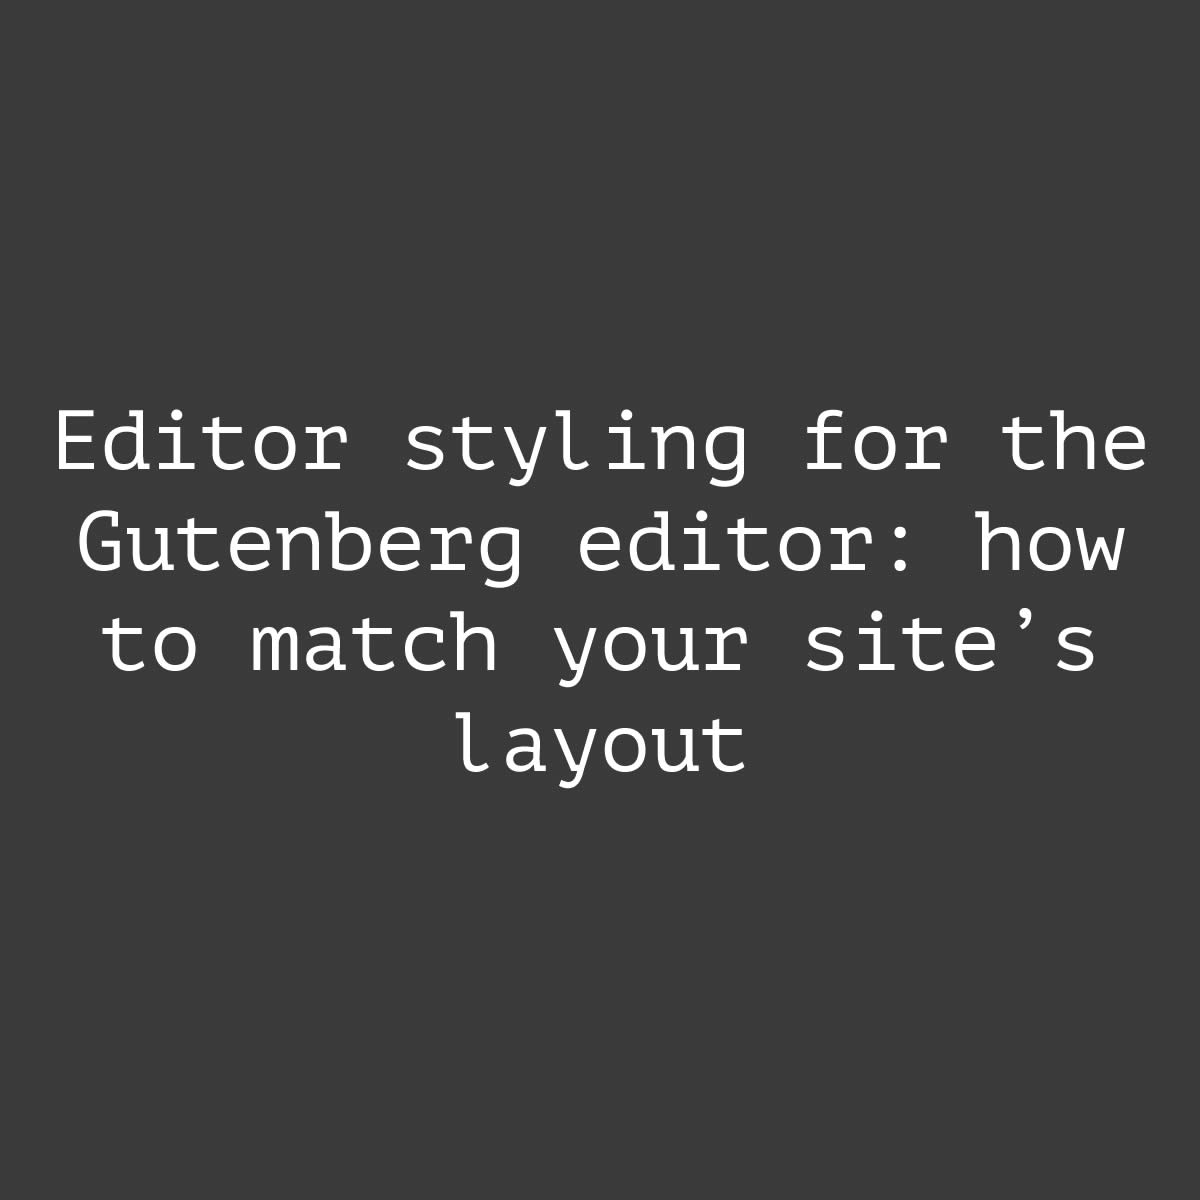 Editor styling for the Gutenberg editor: how to match your site's layout